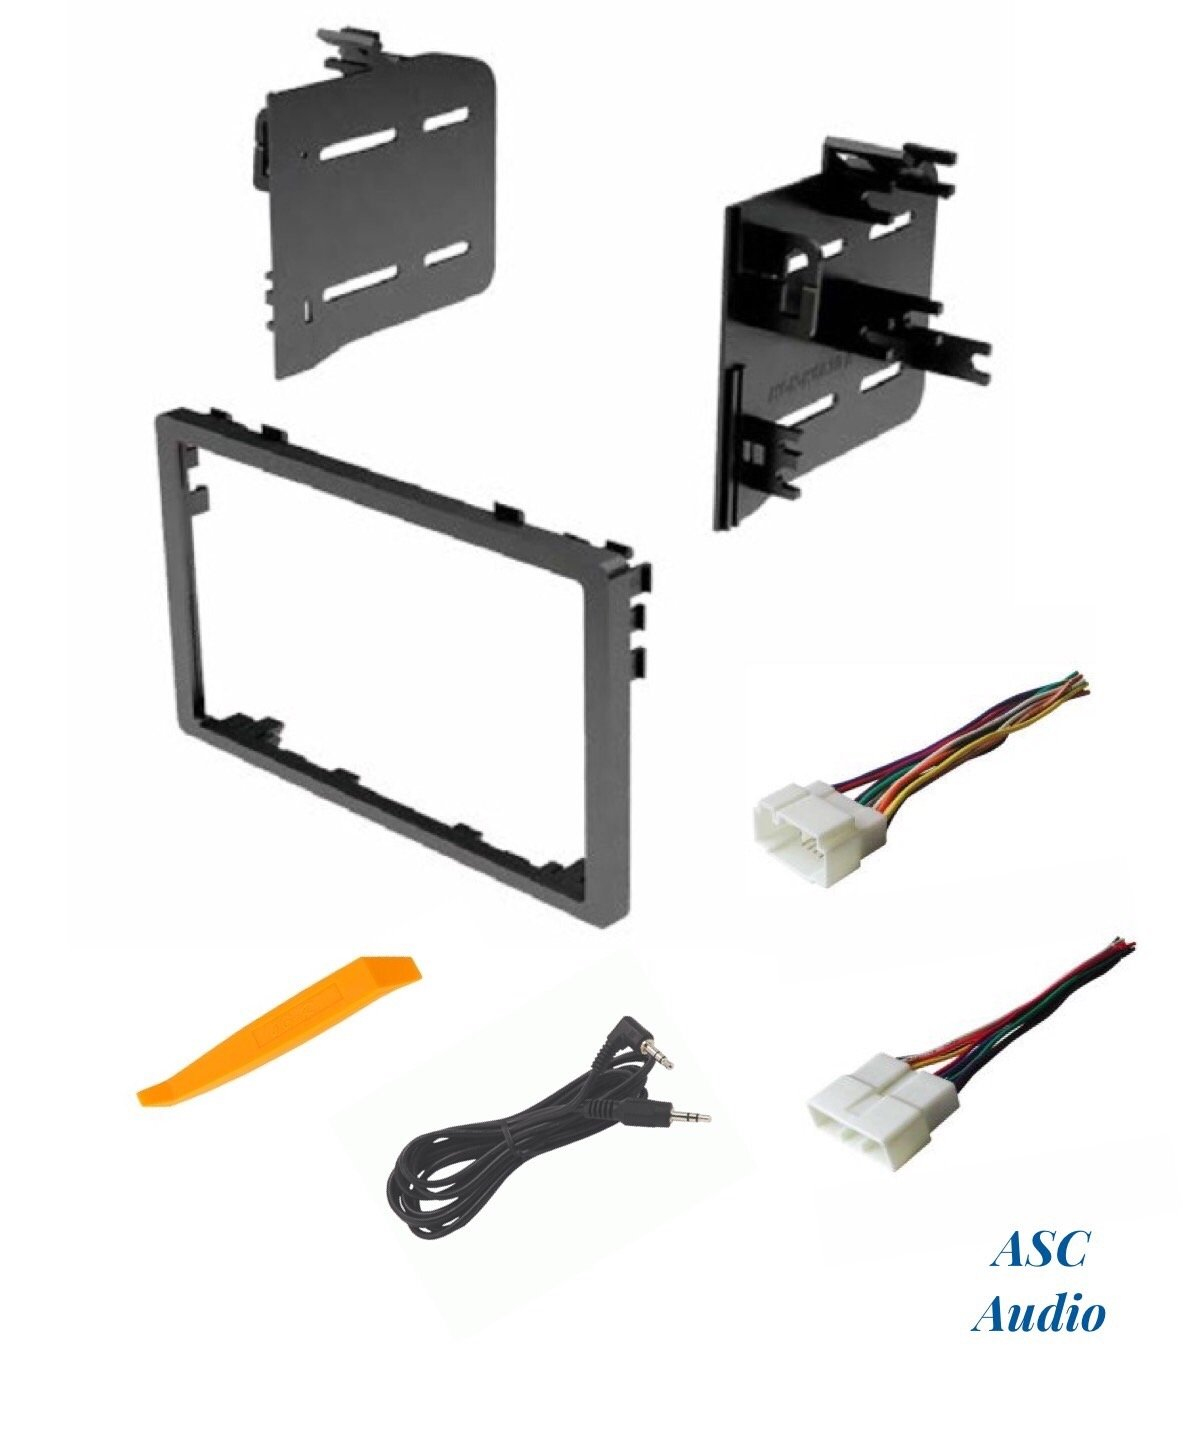 ASC Audio Car Stereo Dash Install Kit and Wire Harness for Installing an Aftermarket Double Din Radio for Select Acura Honda Vehicles - Compatible Vehicles Listed Below by ASC Audio